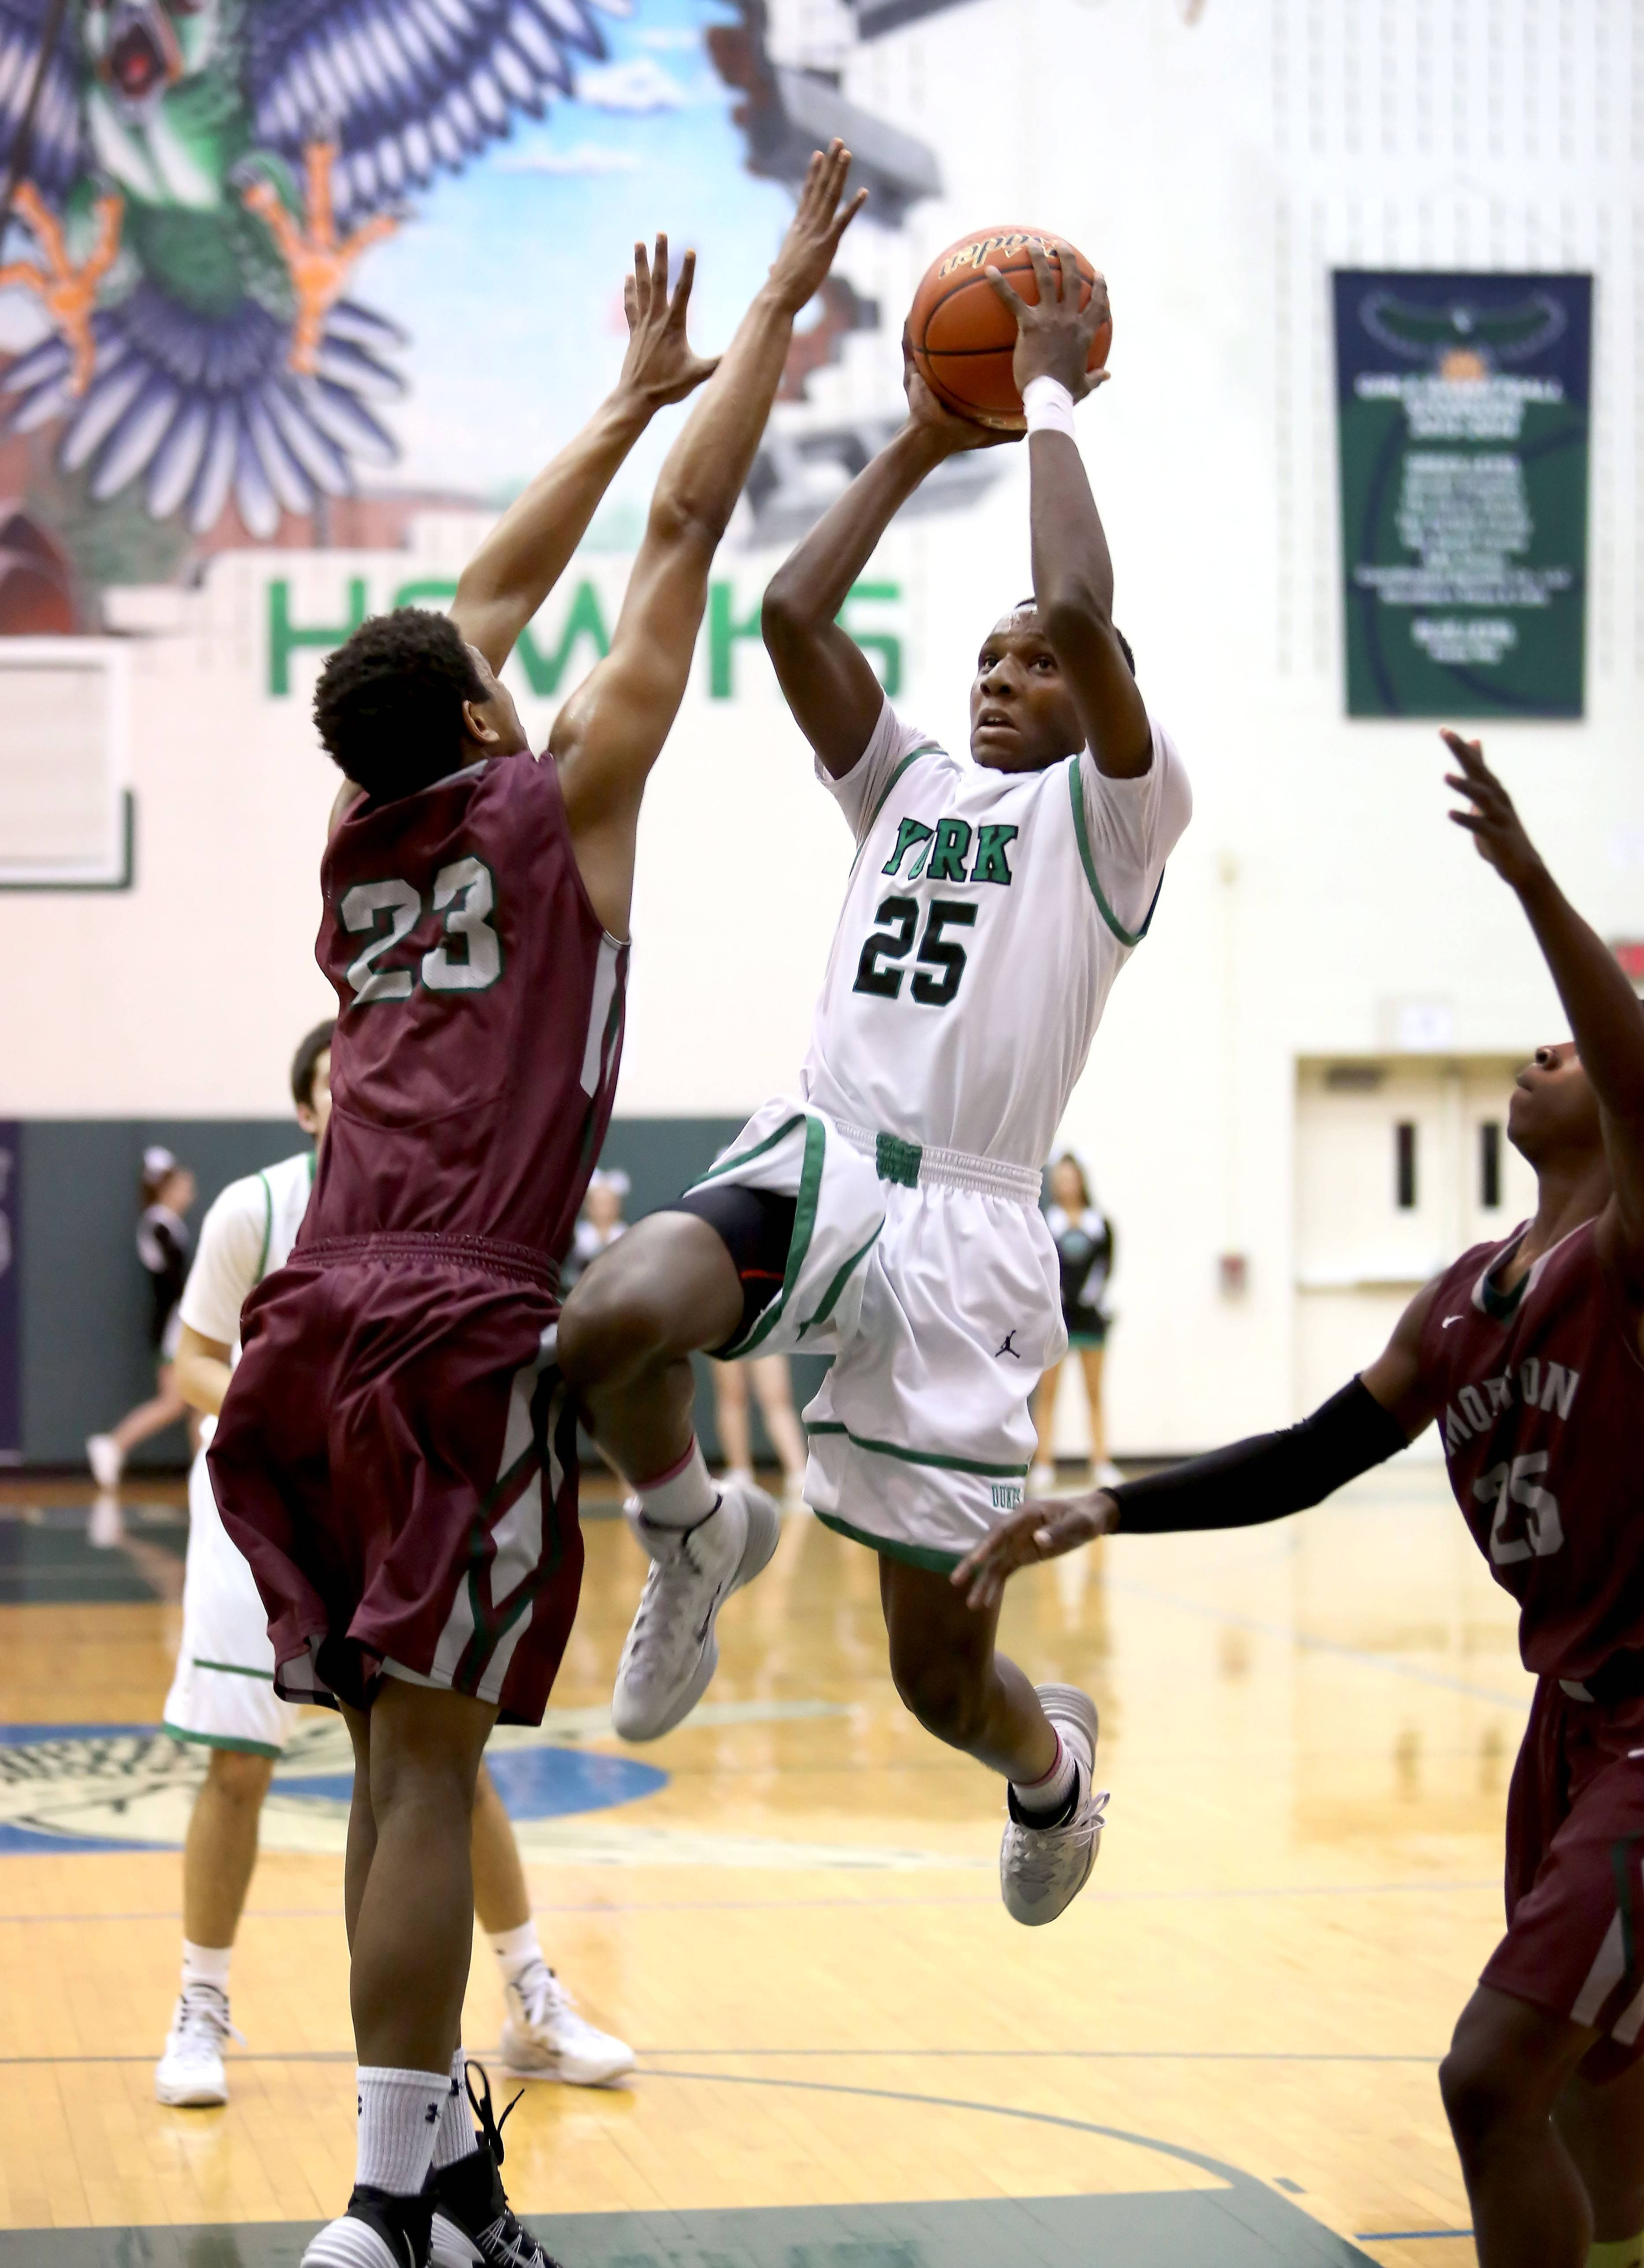 York's Stanley Roberts, center, goes up for a basket.